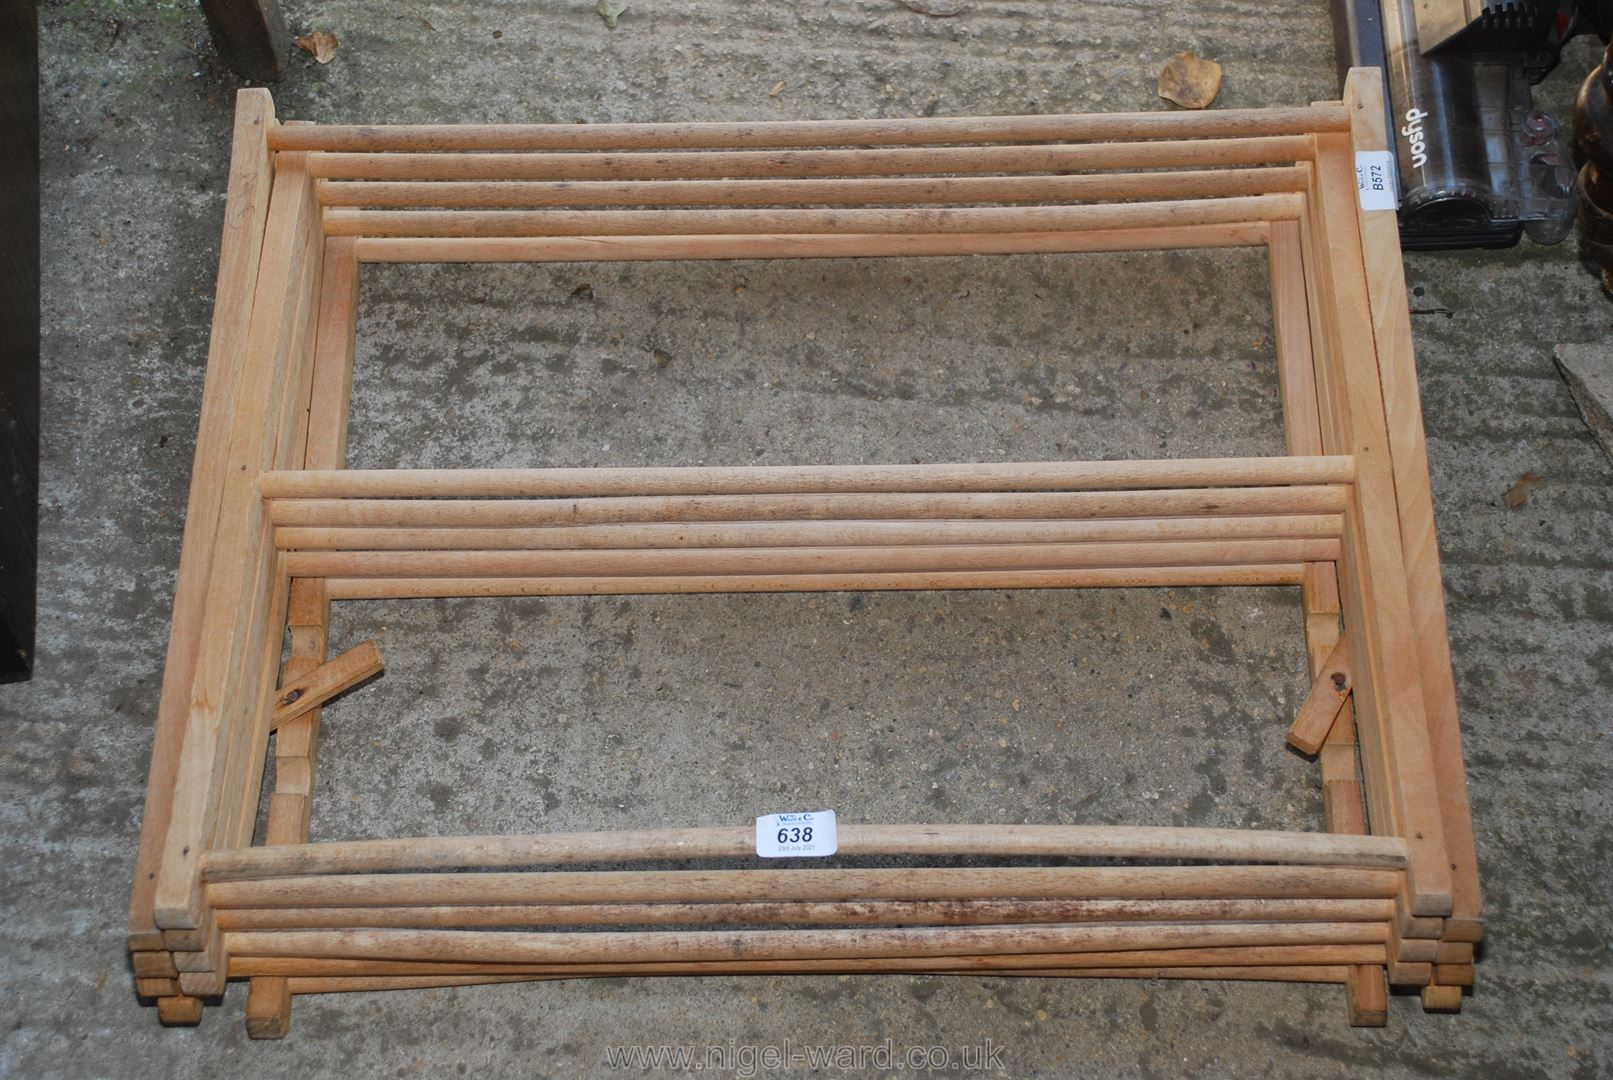 Traditional style wooden clothes airer for repair